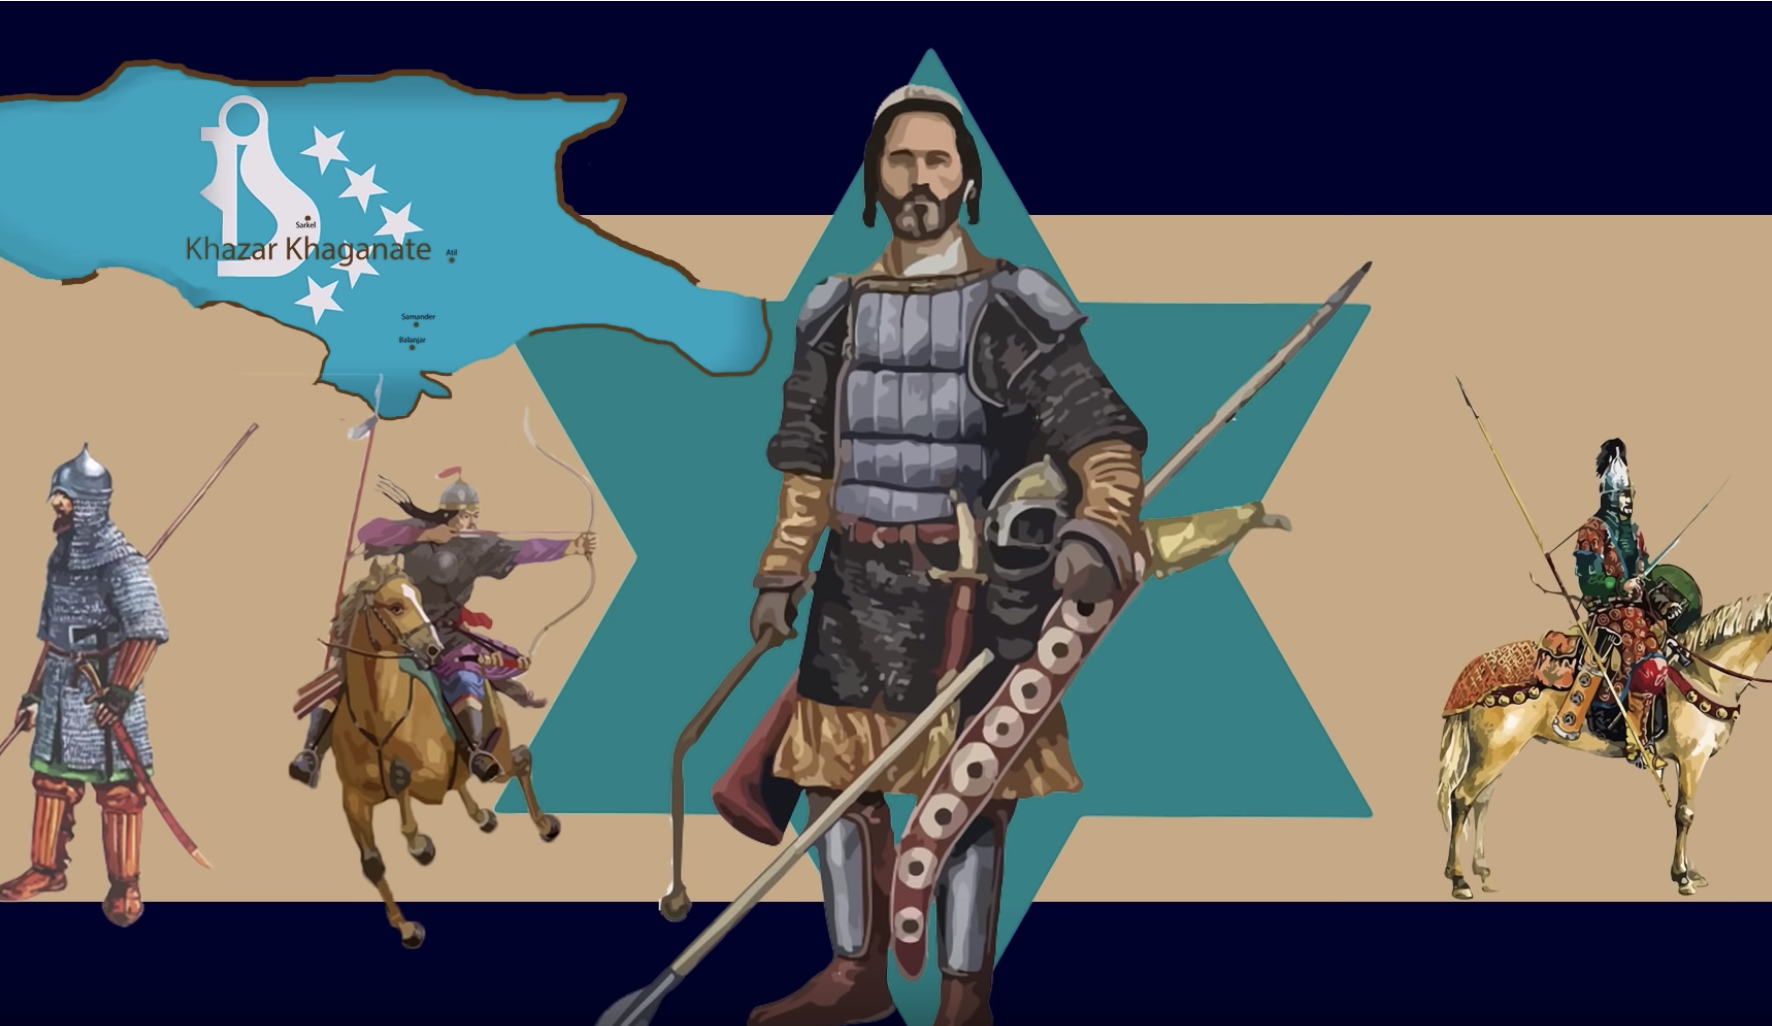 Neglected History: The Khazar Khaganate. The Jews' lost empire which they won't talk about